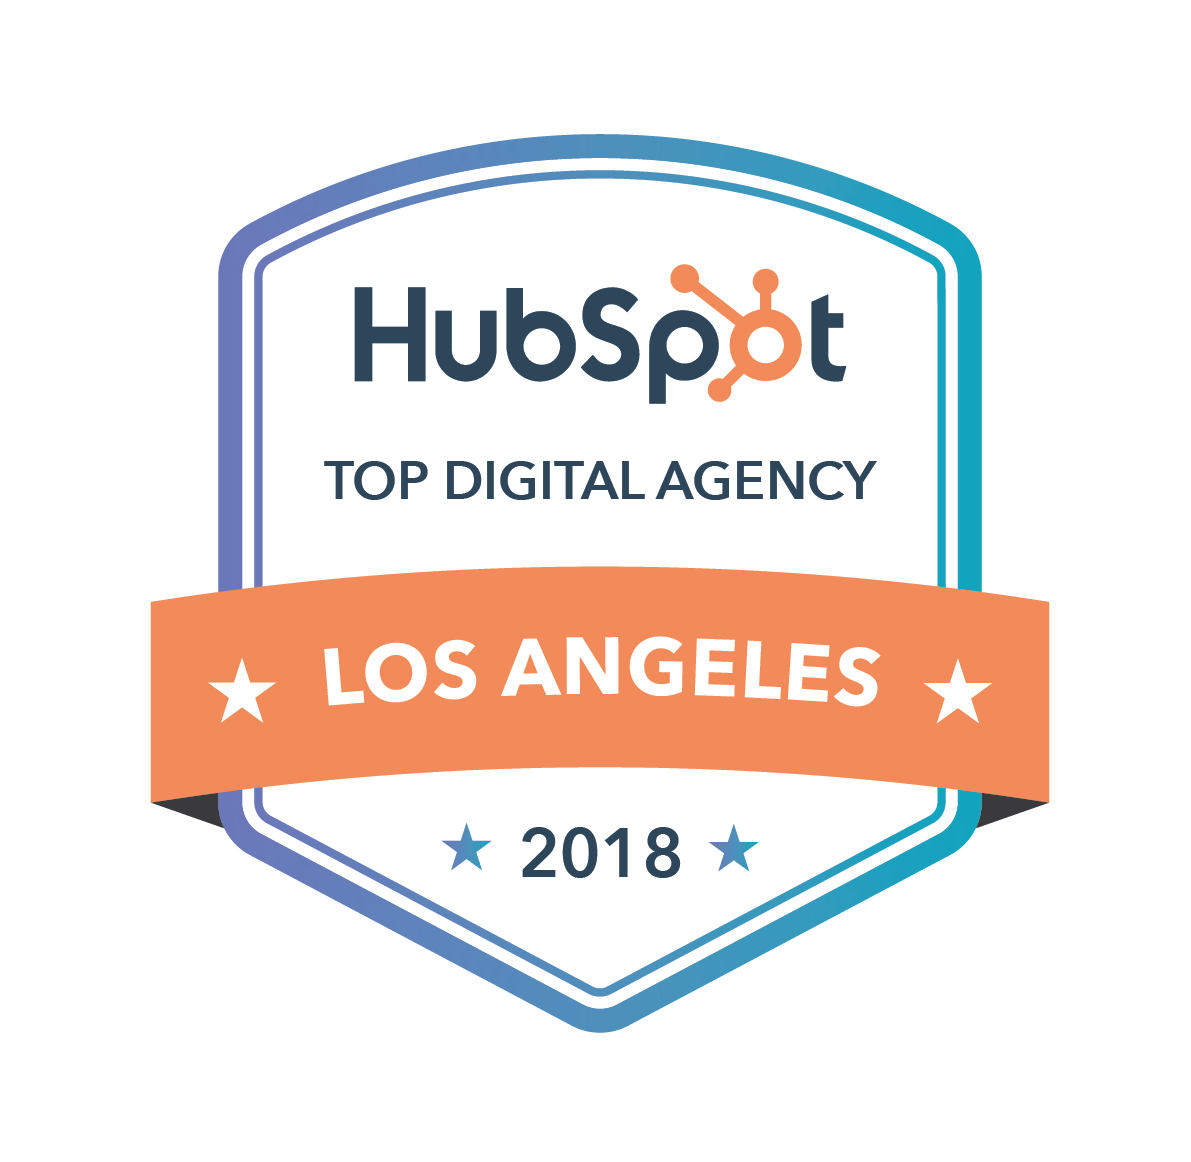 HubSpot Top Digital Agency Los Angeles